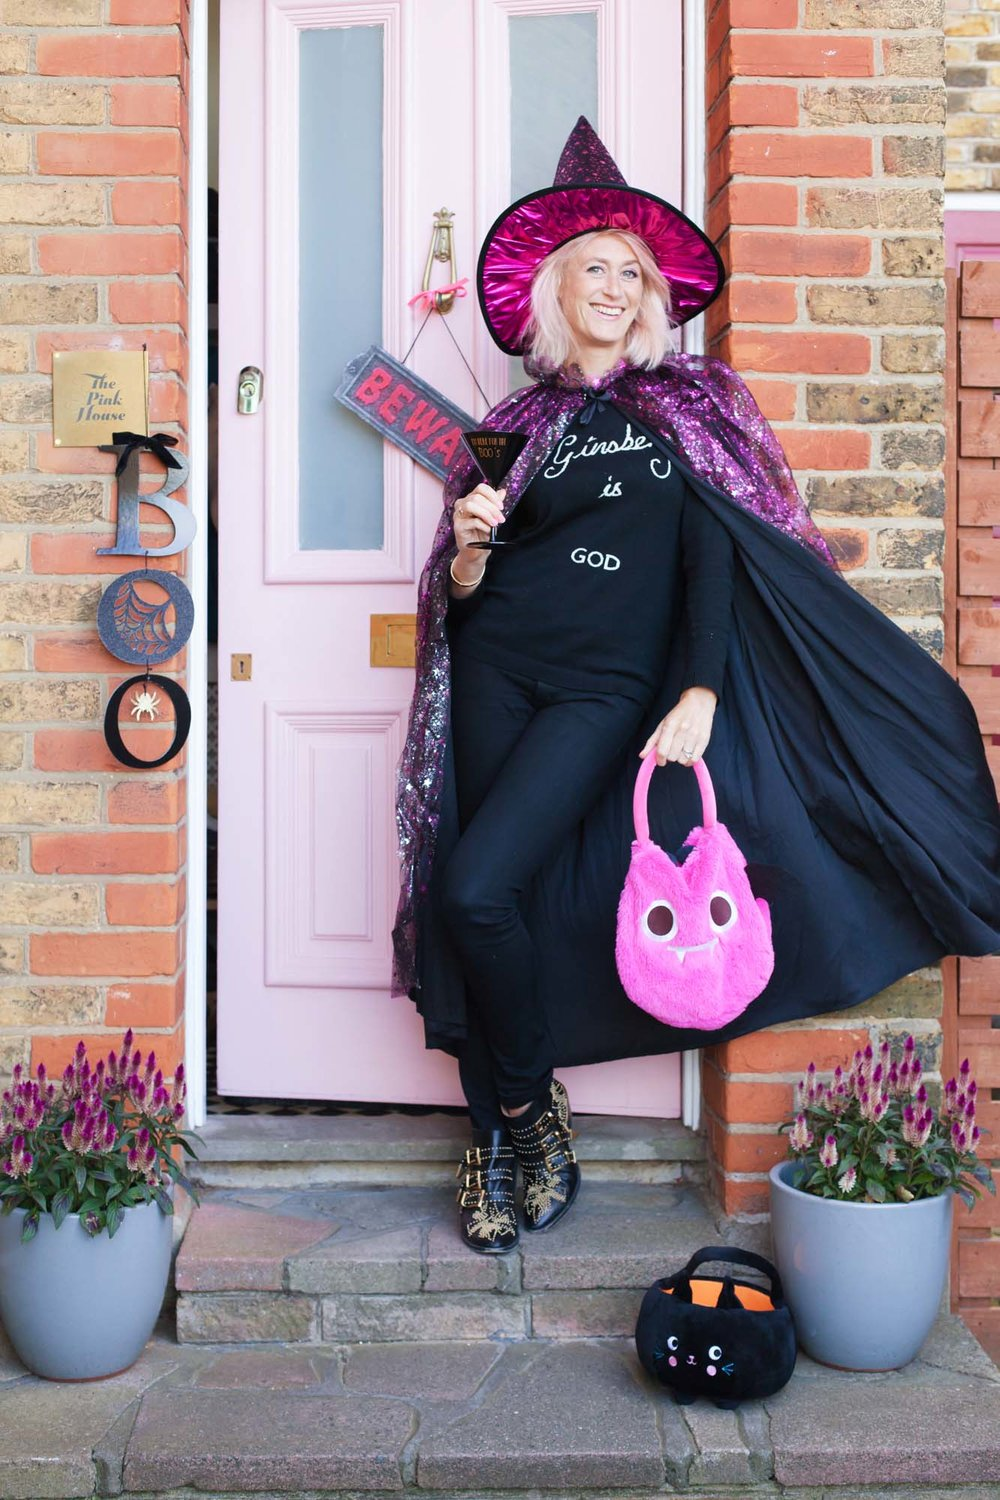 Emily Murray from The Pink House in a Sainsbury's Tu pink witch Halloween costume